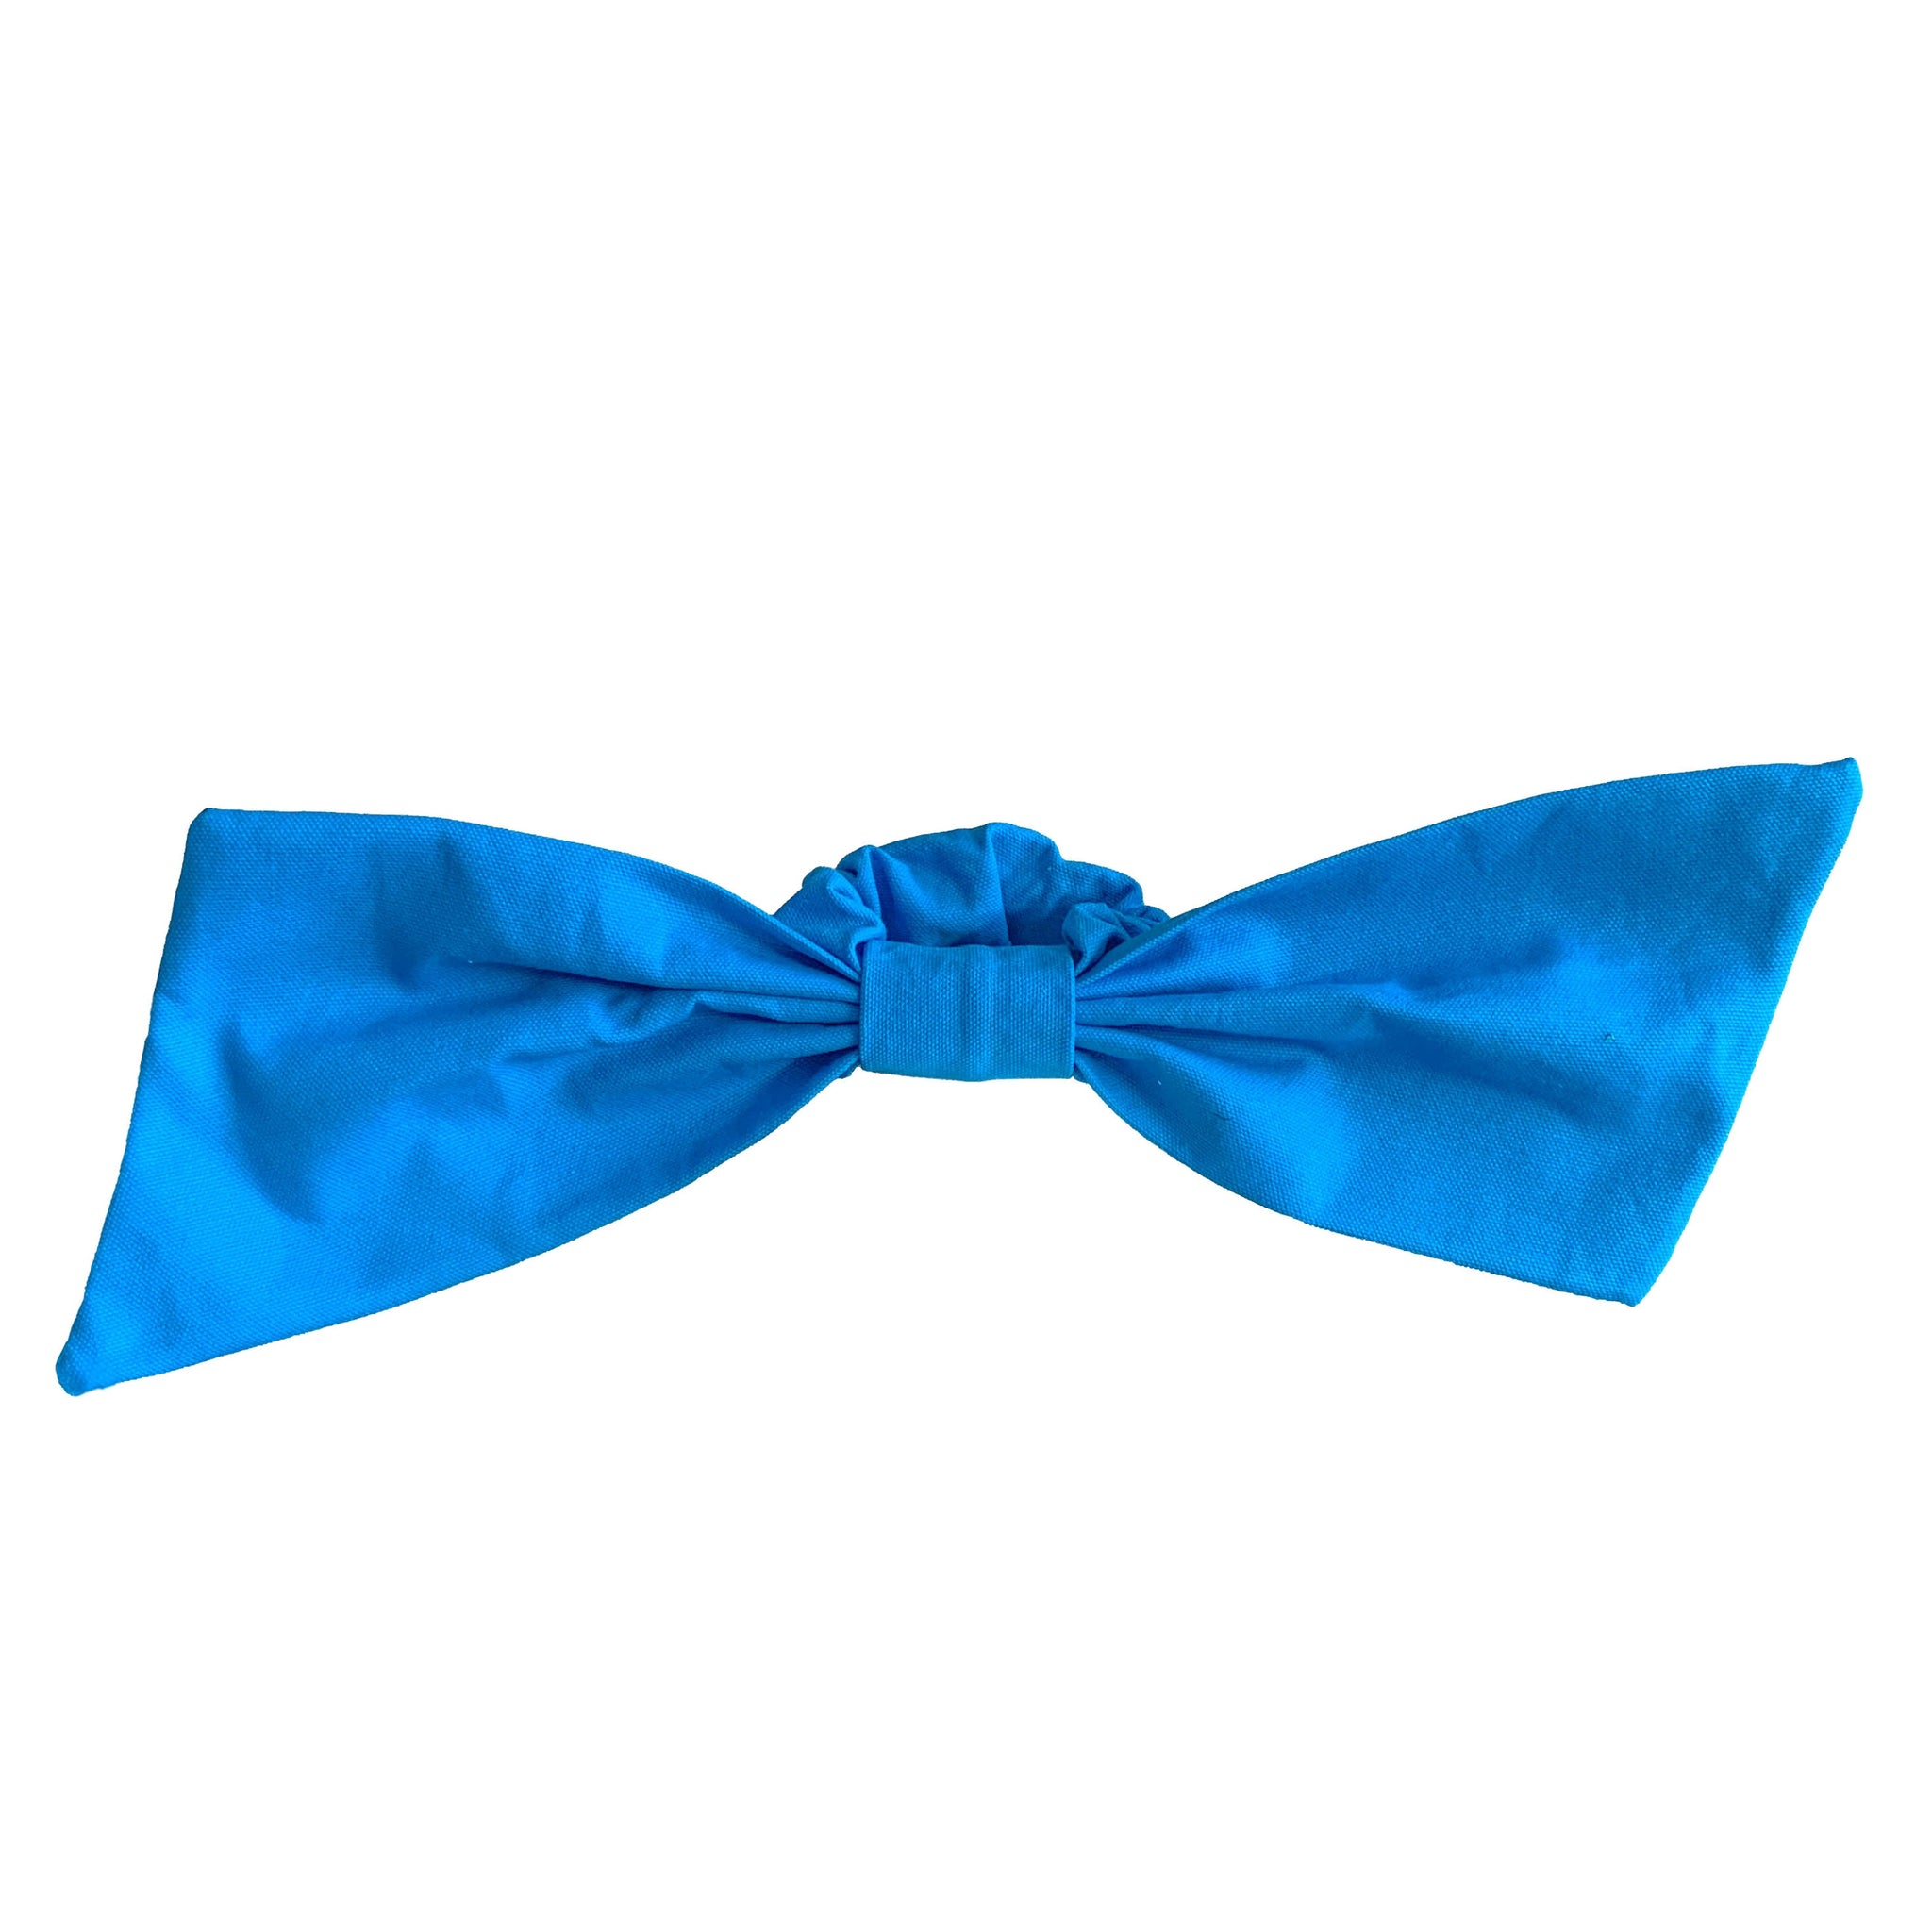 luxury blue scrunchies | bow hair ties | designer hair accessories by tanya litkovska